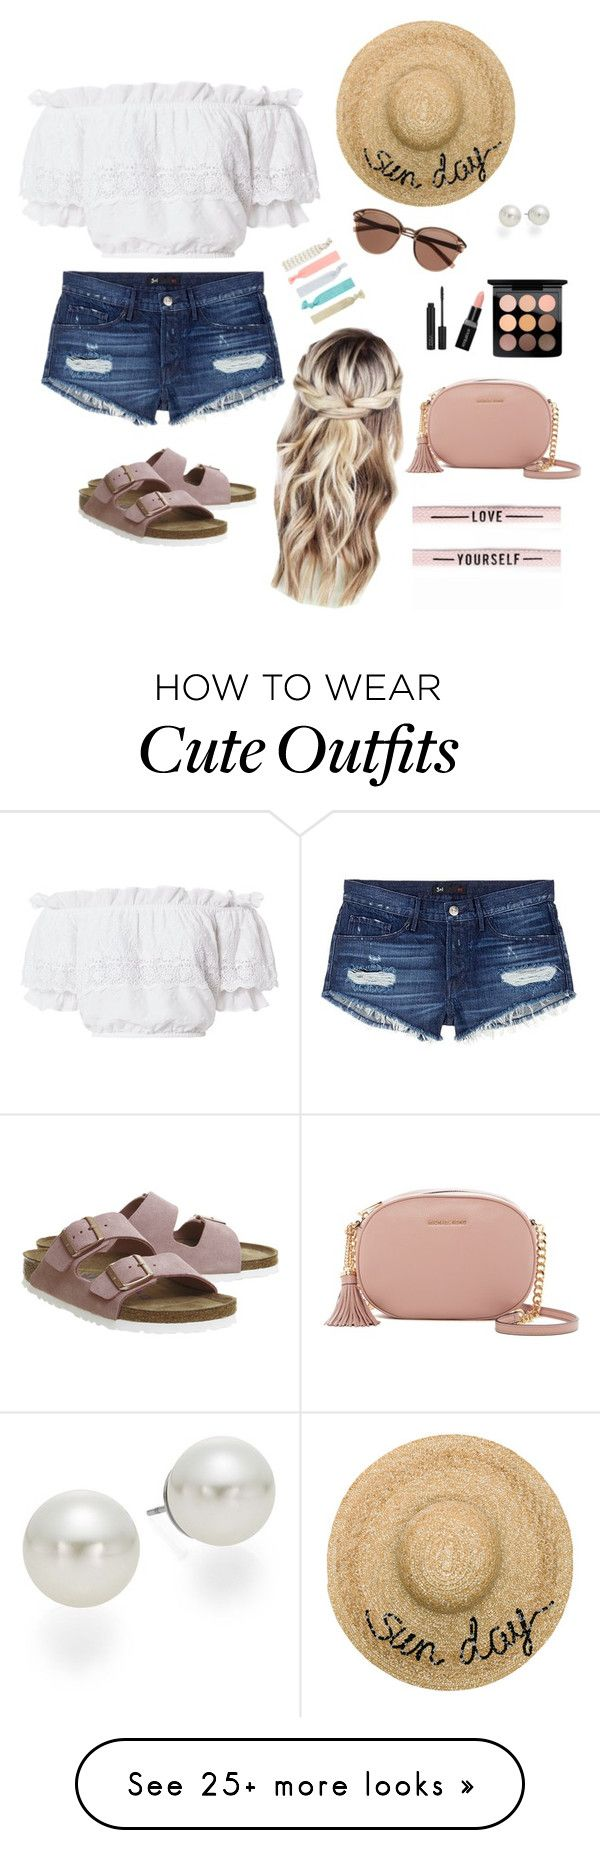 Outfit #2 by alliecampbell-1 on Polyvore featuring 3x1, LoveShackFancy, Birkenstock, Witchery, Eugenia Kim, Accessorize, AK Anne Klein, MAC Cosmetics, Smashbox and MICHAEL Michael Kors